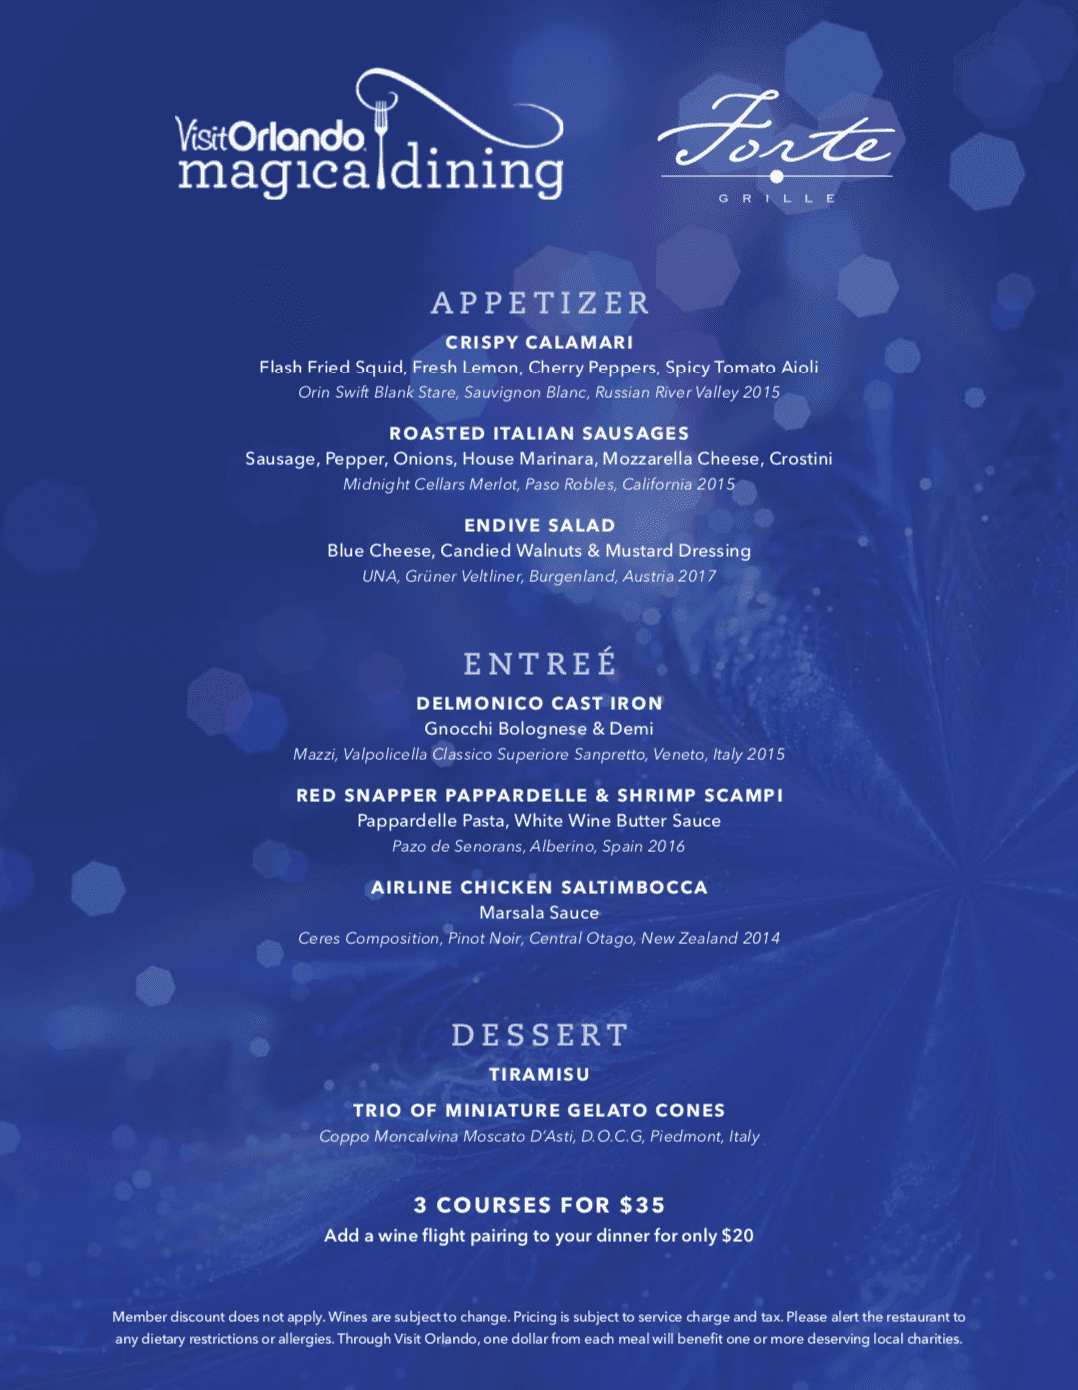 Reunion Resort Magical Dining Forte Grille Menu.